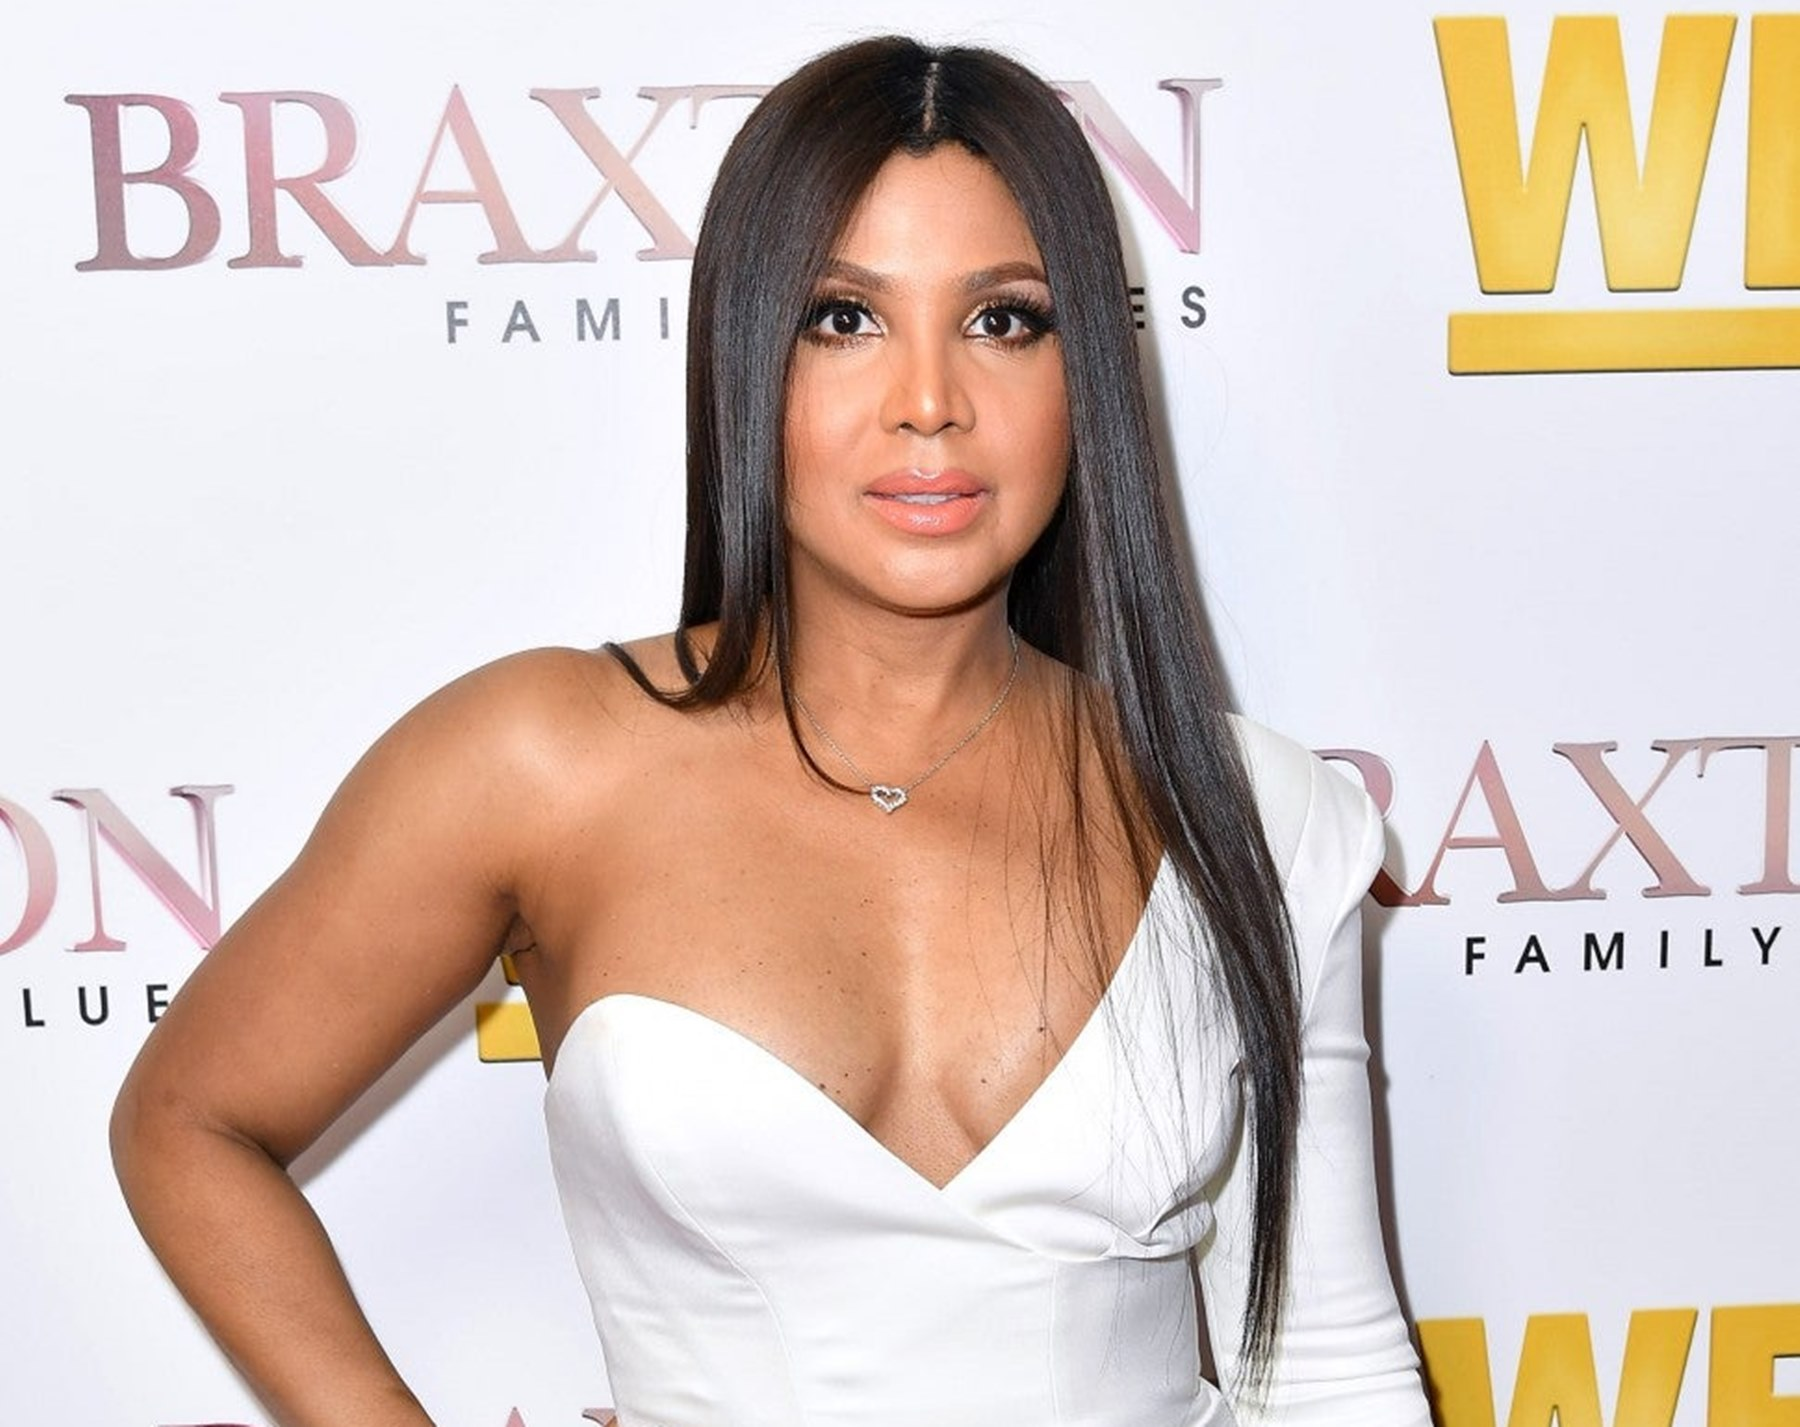 Toni Braxton Convinces Fans One More Time That She Has A Kind Heart